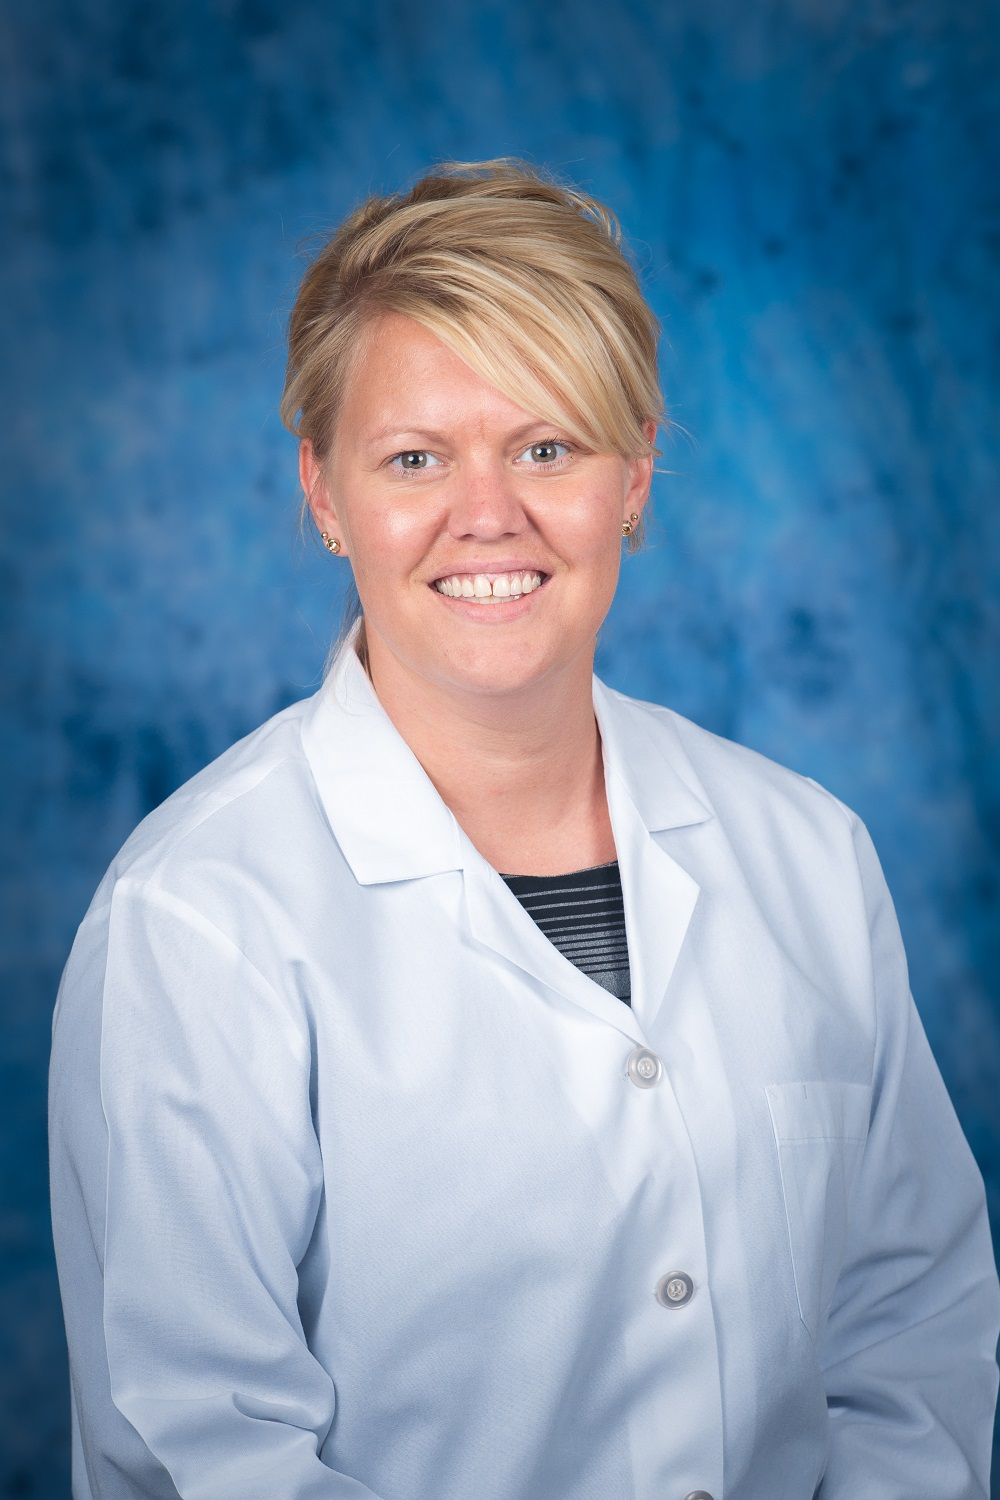 Danielle Hobdy, MD of Fort Sanders Women's Specialists